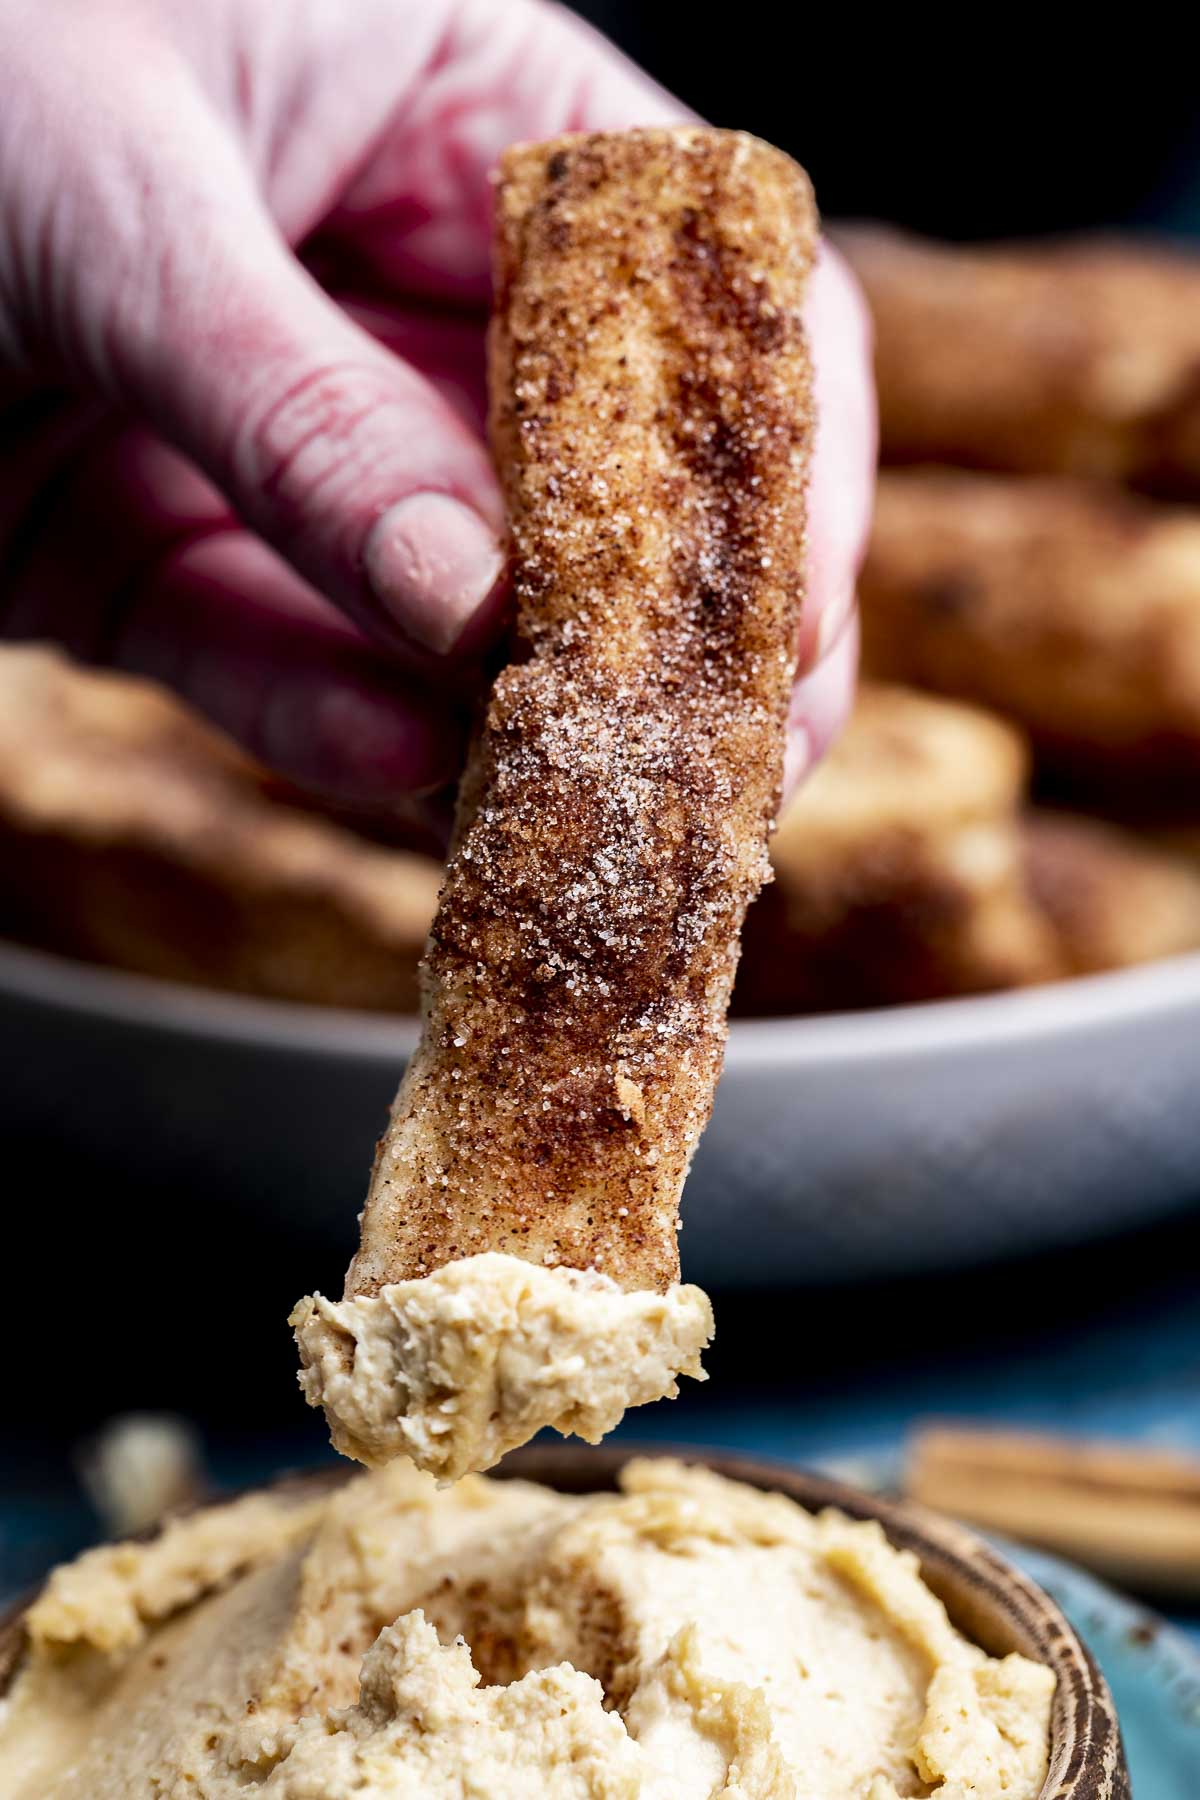 Churros being dipped into a caramel cheesecake dip.